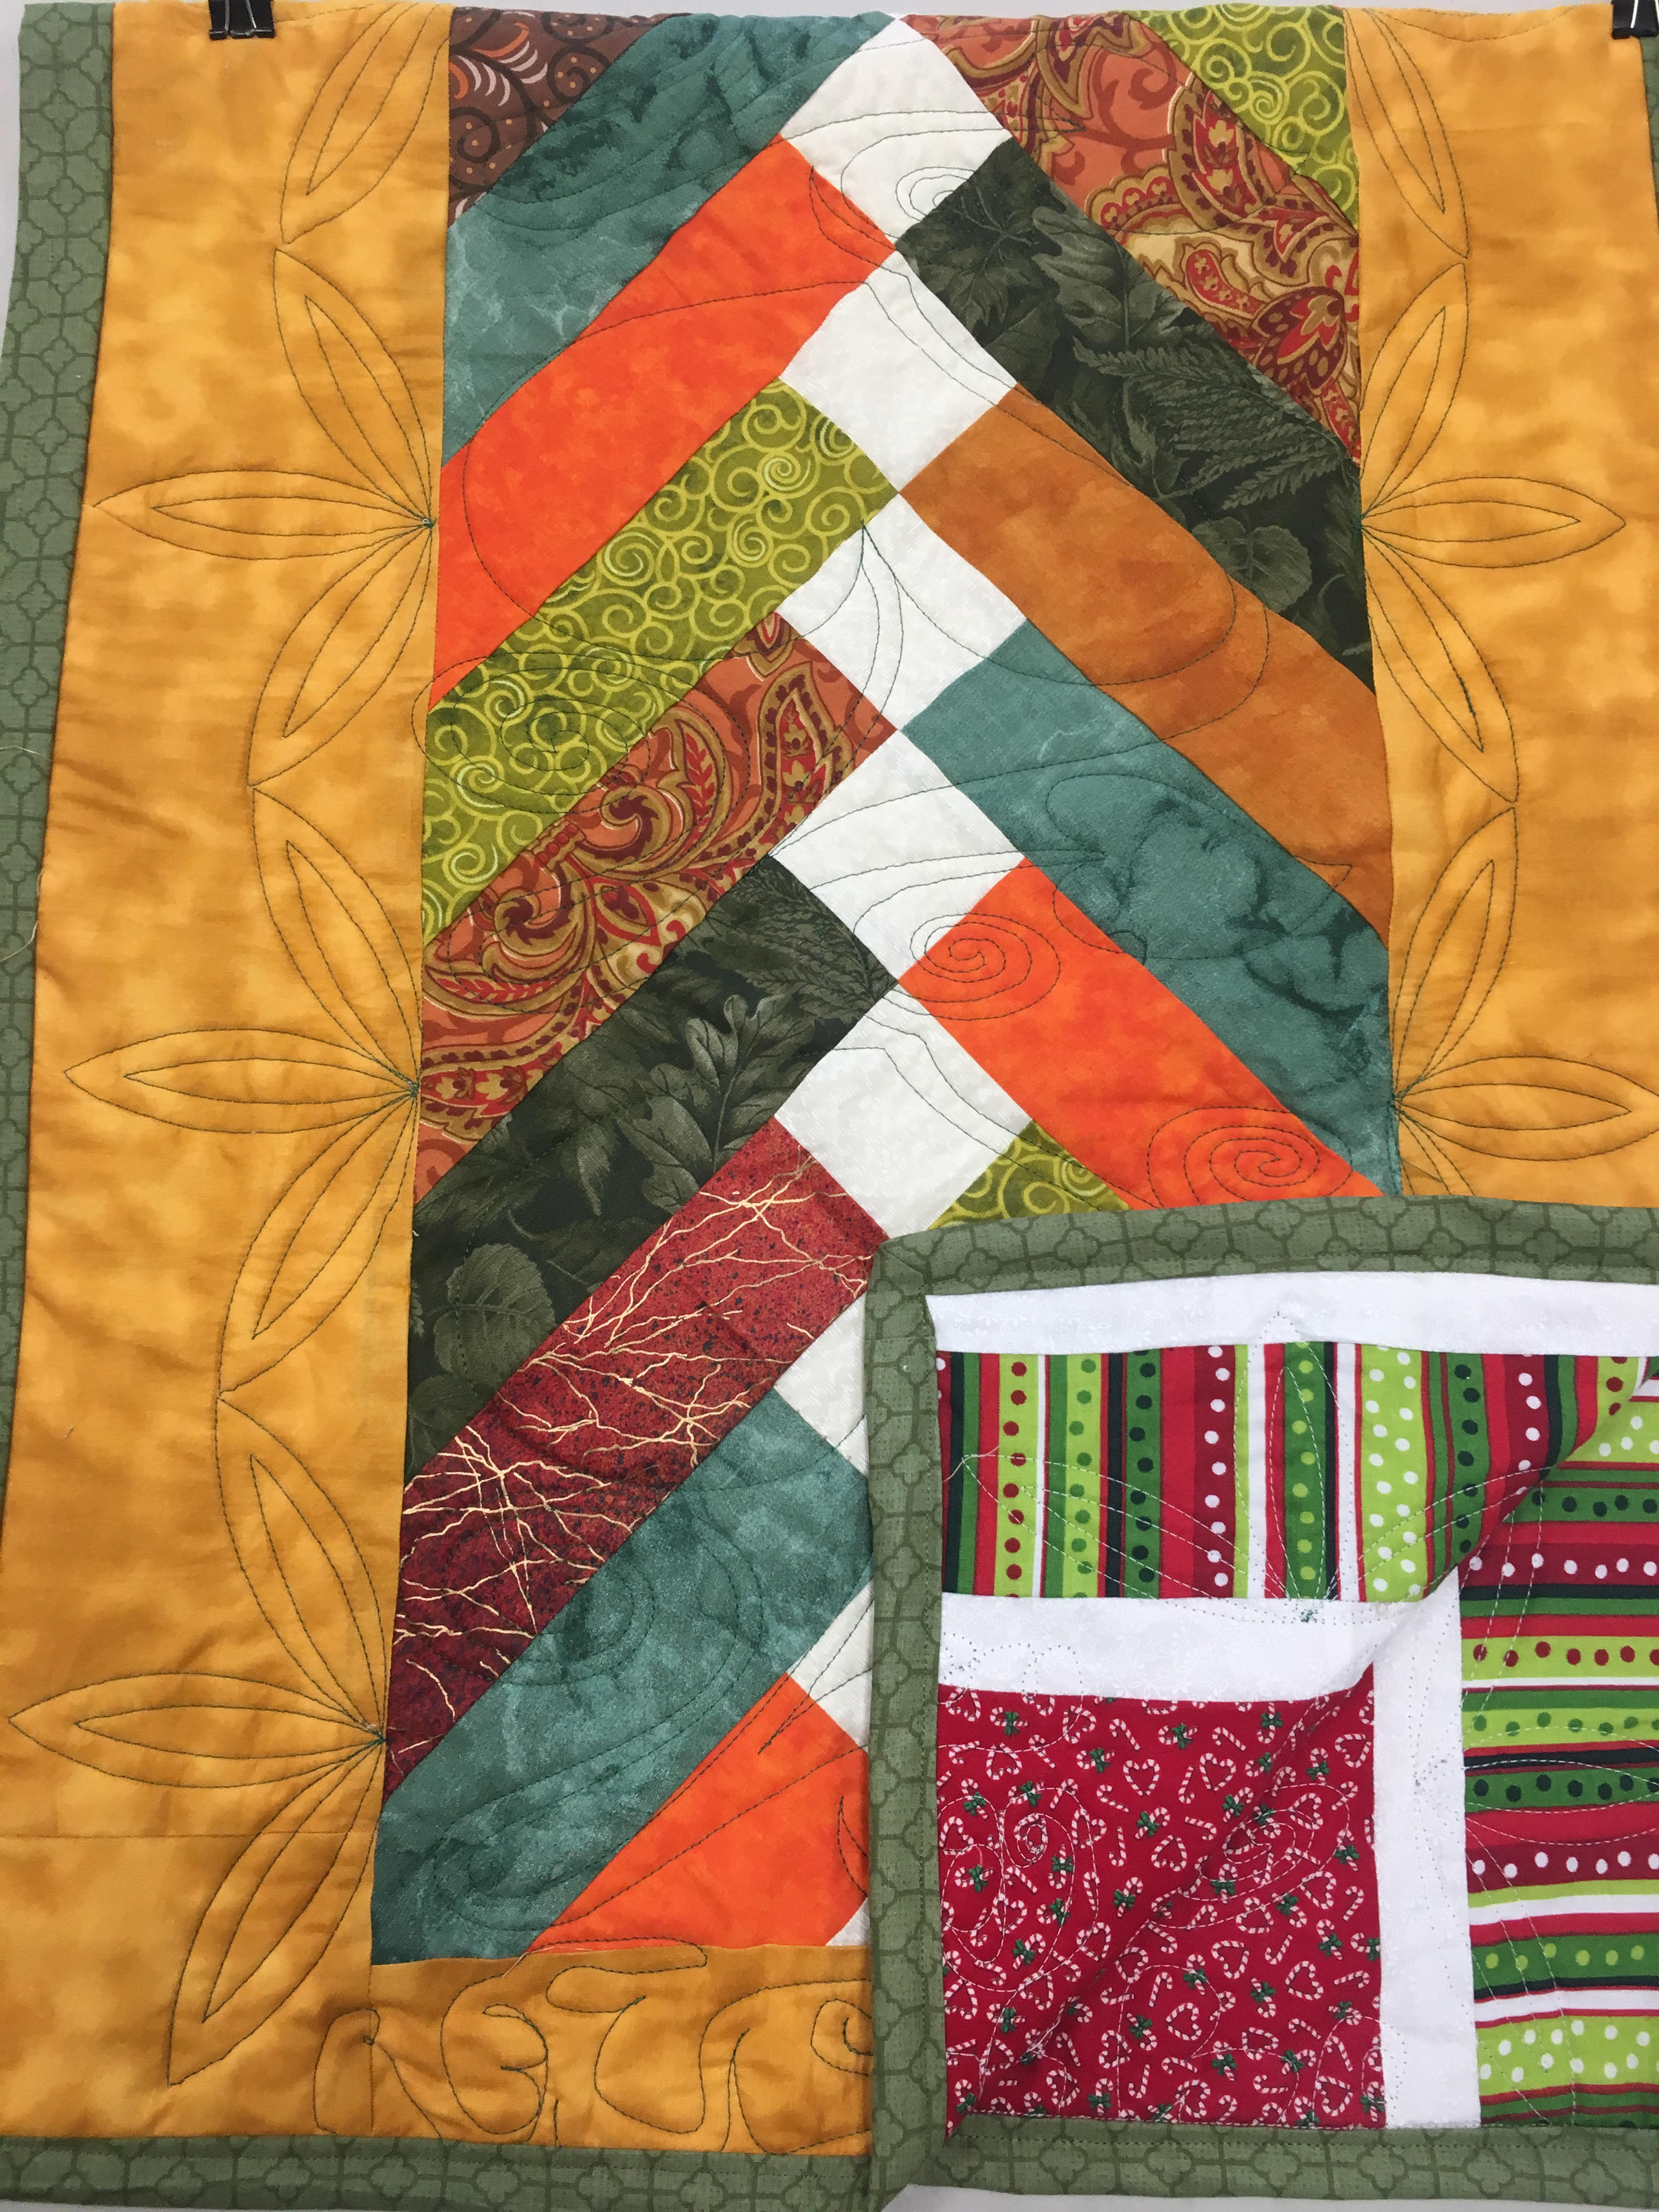 French Braid Table Runner Pattern : french, braid, table, runner, pattern, French, Braid, Table, Runner,, Corona,, Sessions,, Moore's, Sewing